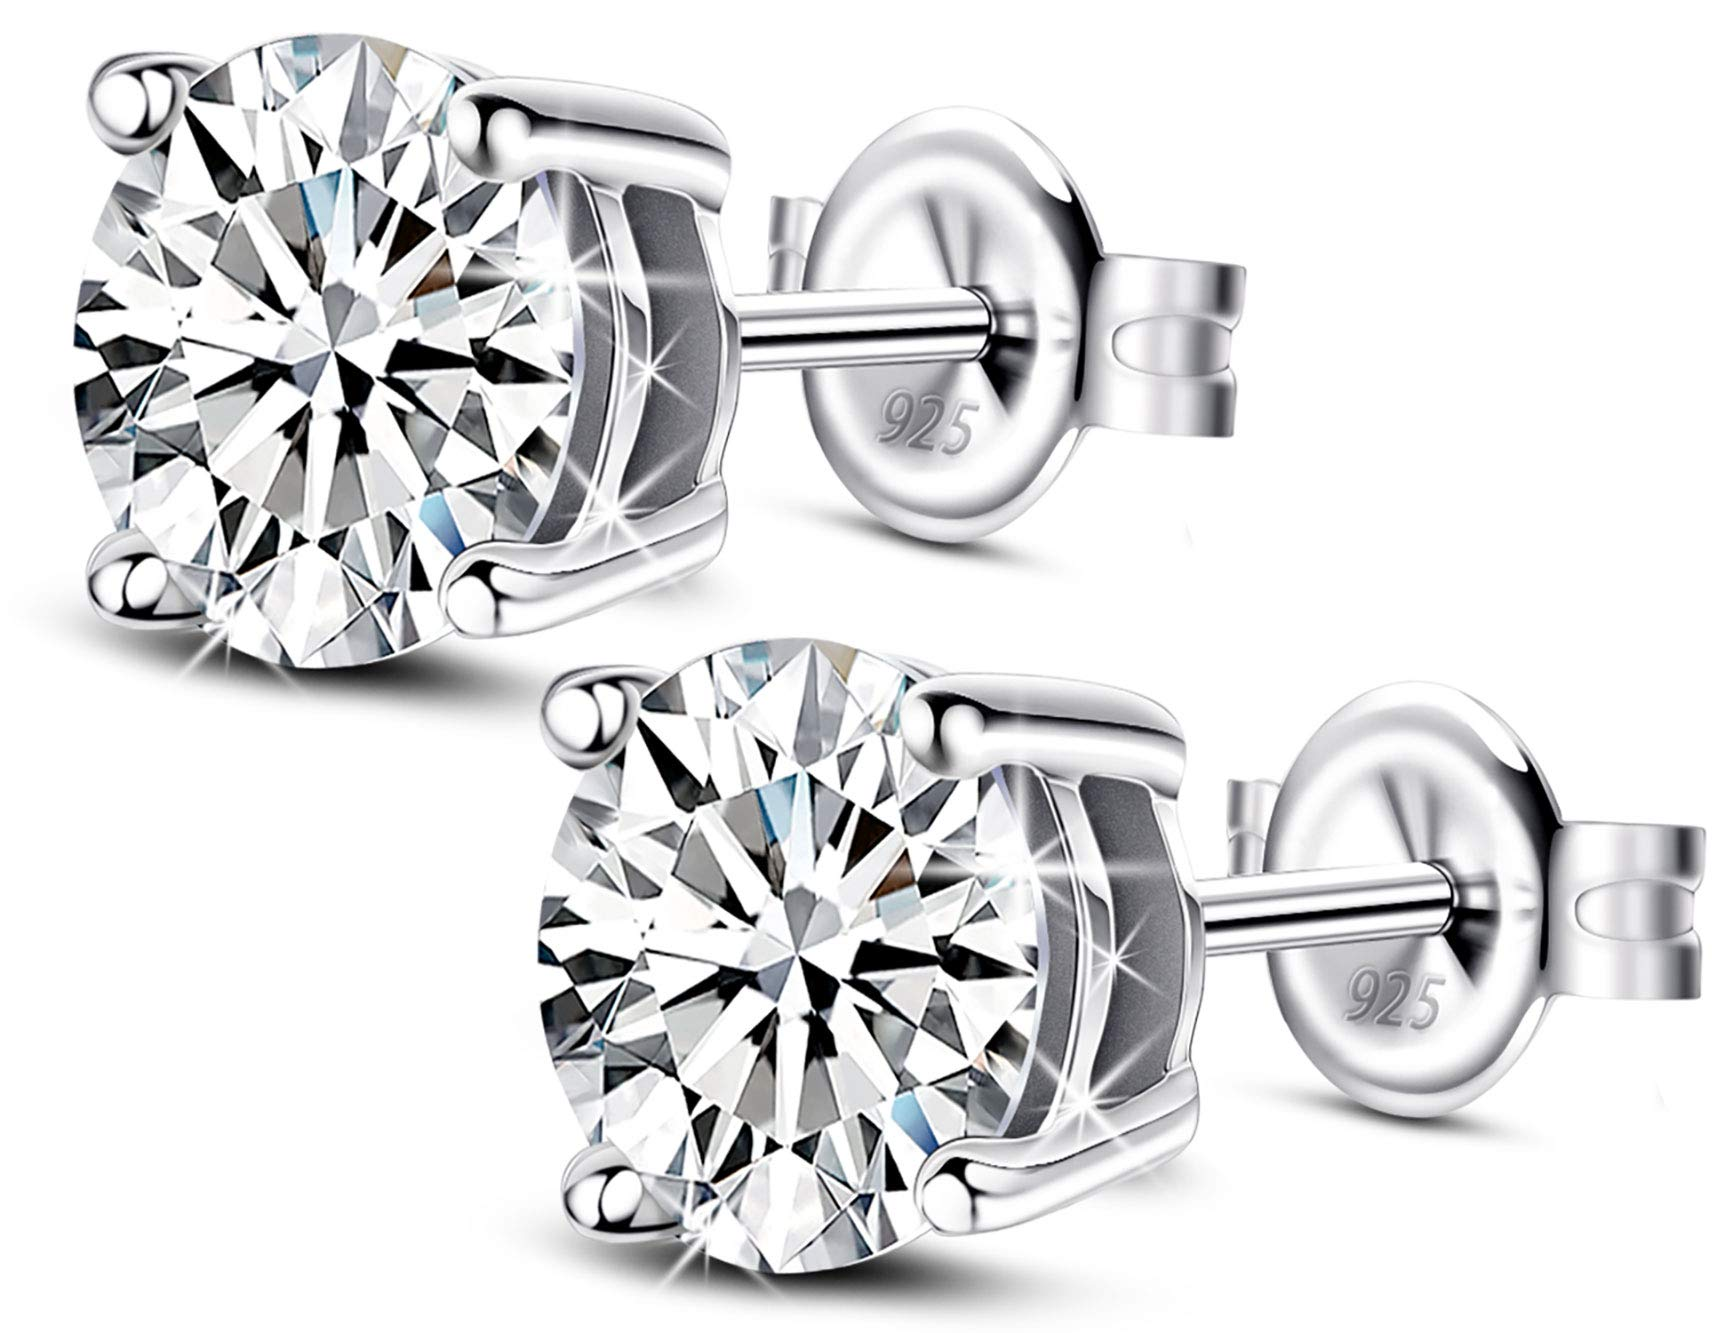 Jewlpire Stud Earrings 18K White Gold Plated Cubic Zirconia Earrings Hypoallergenic Sterling Silver Earrings for Sensitive Ears for Women & Girls (1 Pair) by Jewlpire